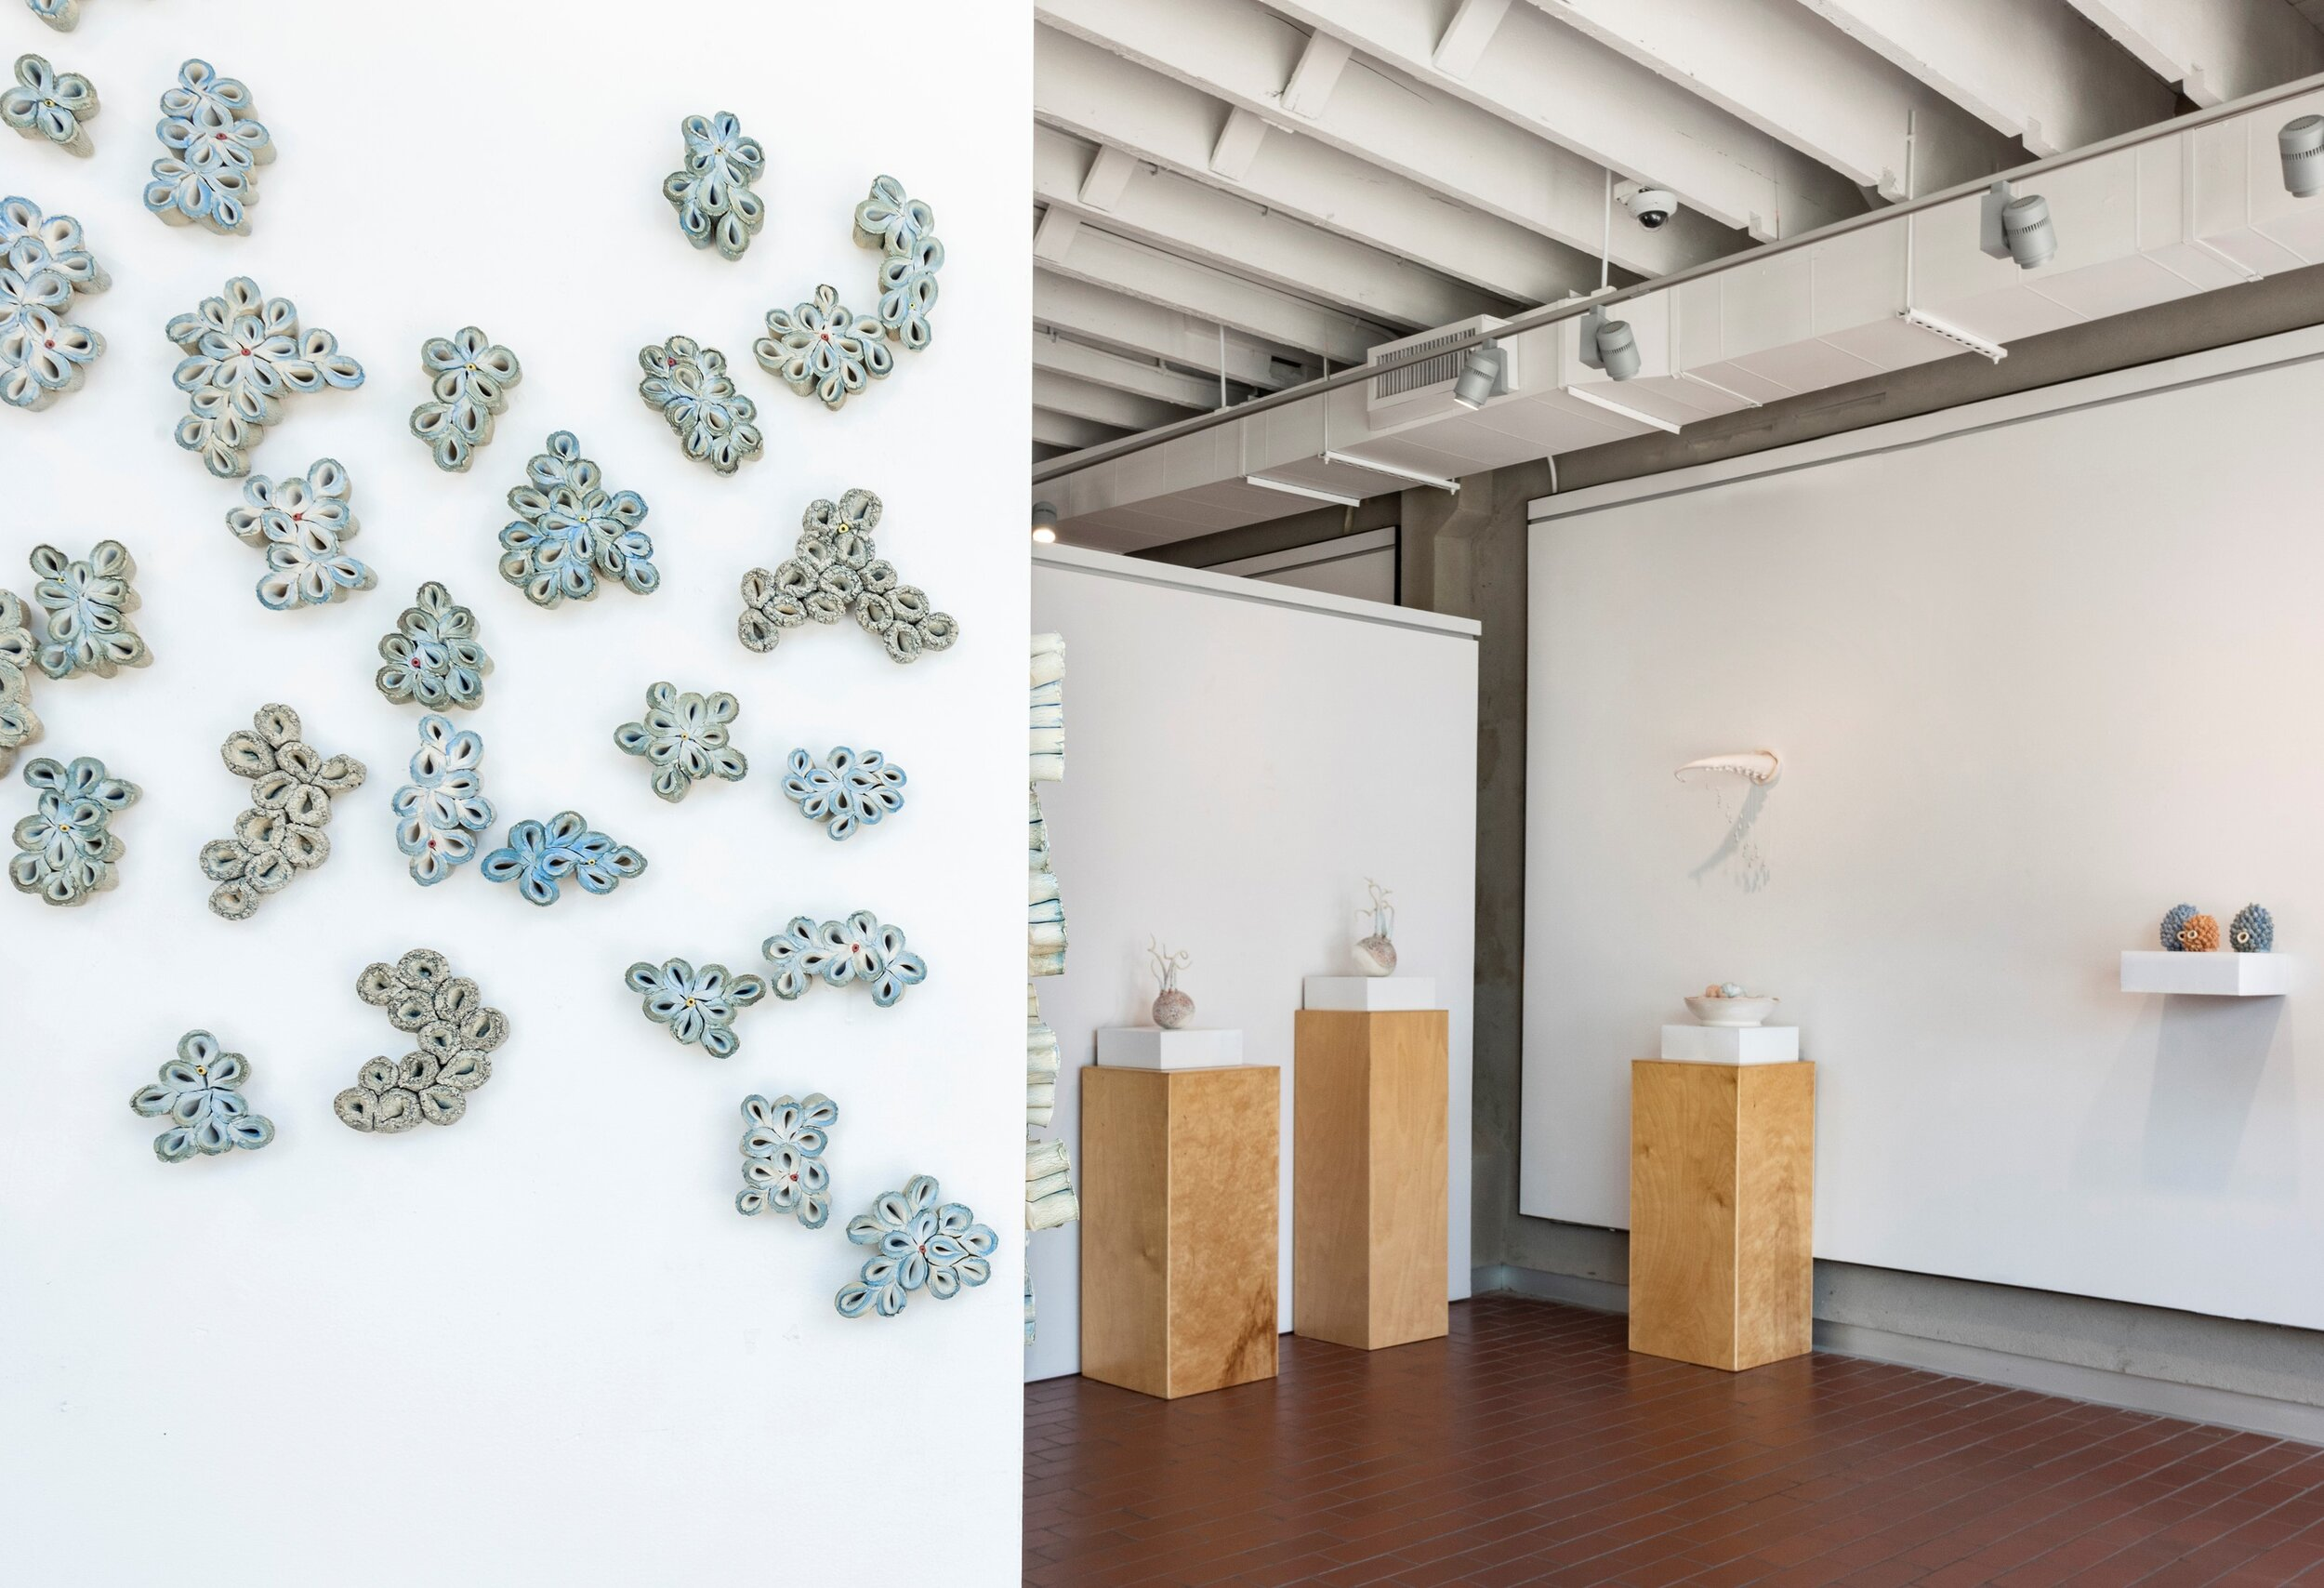 Cultivated on Dry Land   at Georgetown Art Center